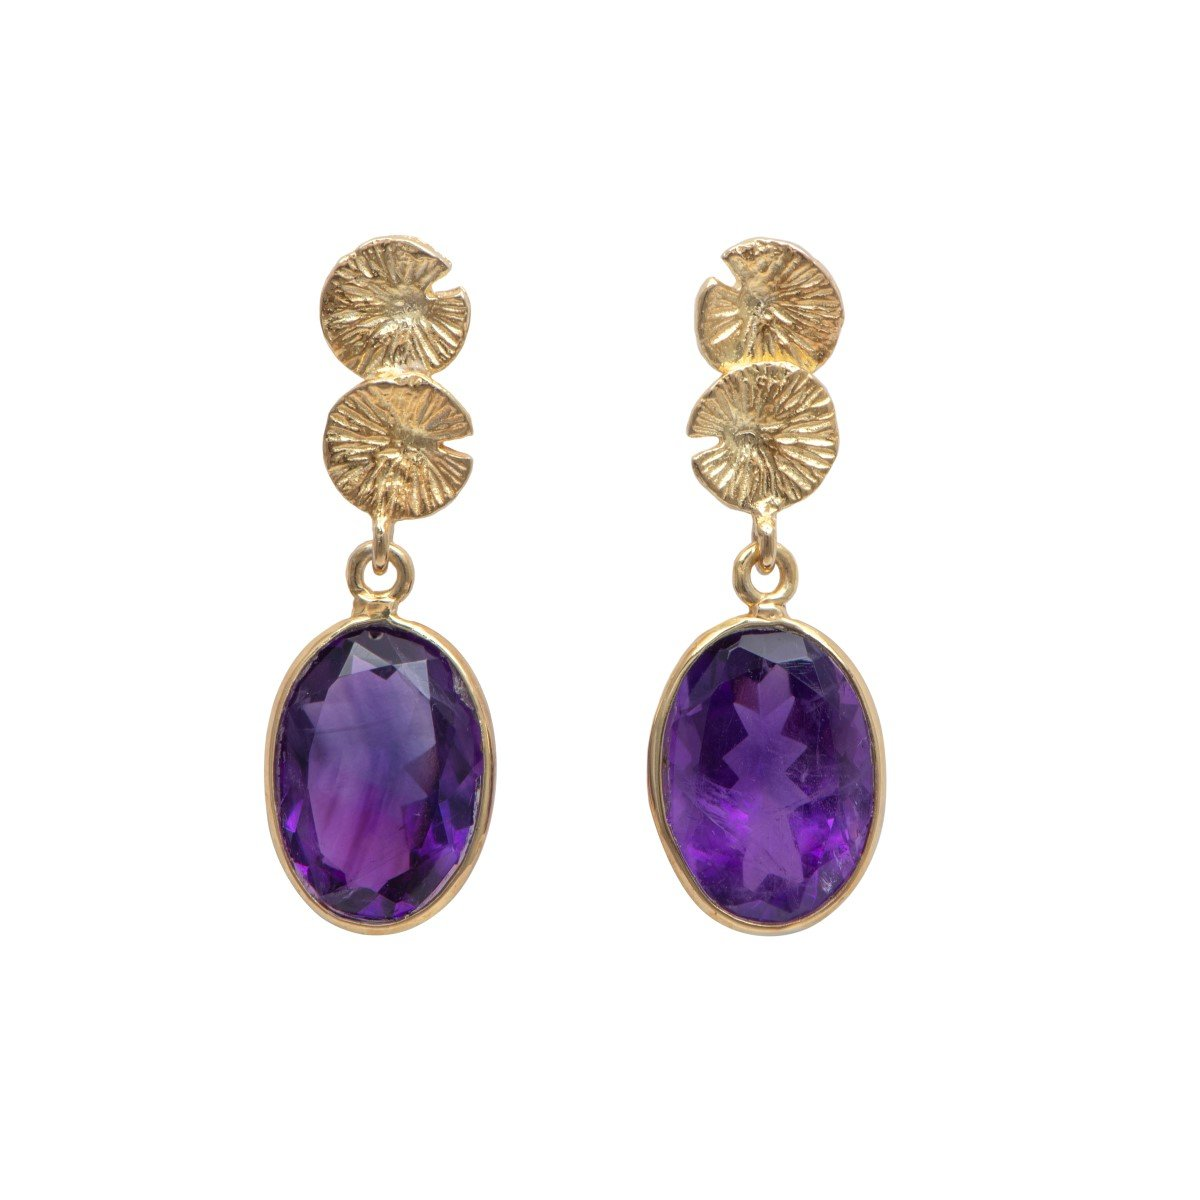 Lily Pad Earrings in Gold Plated Sterling Silver with an Amethyst Gemstone Drop